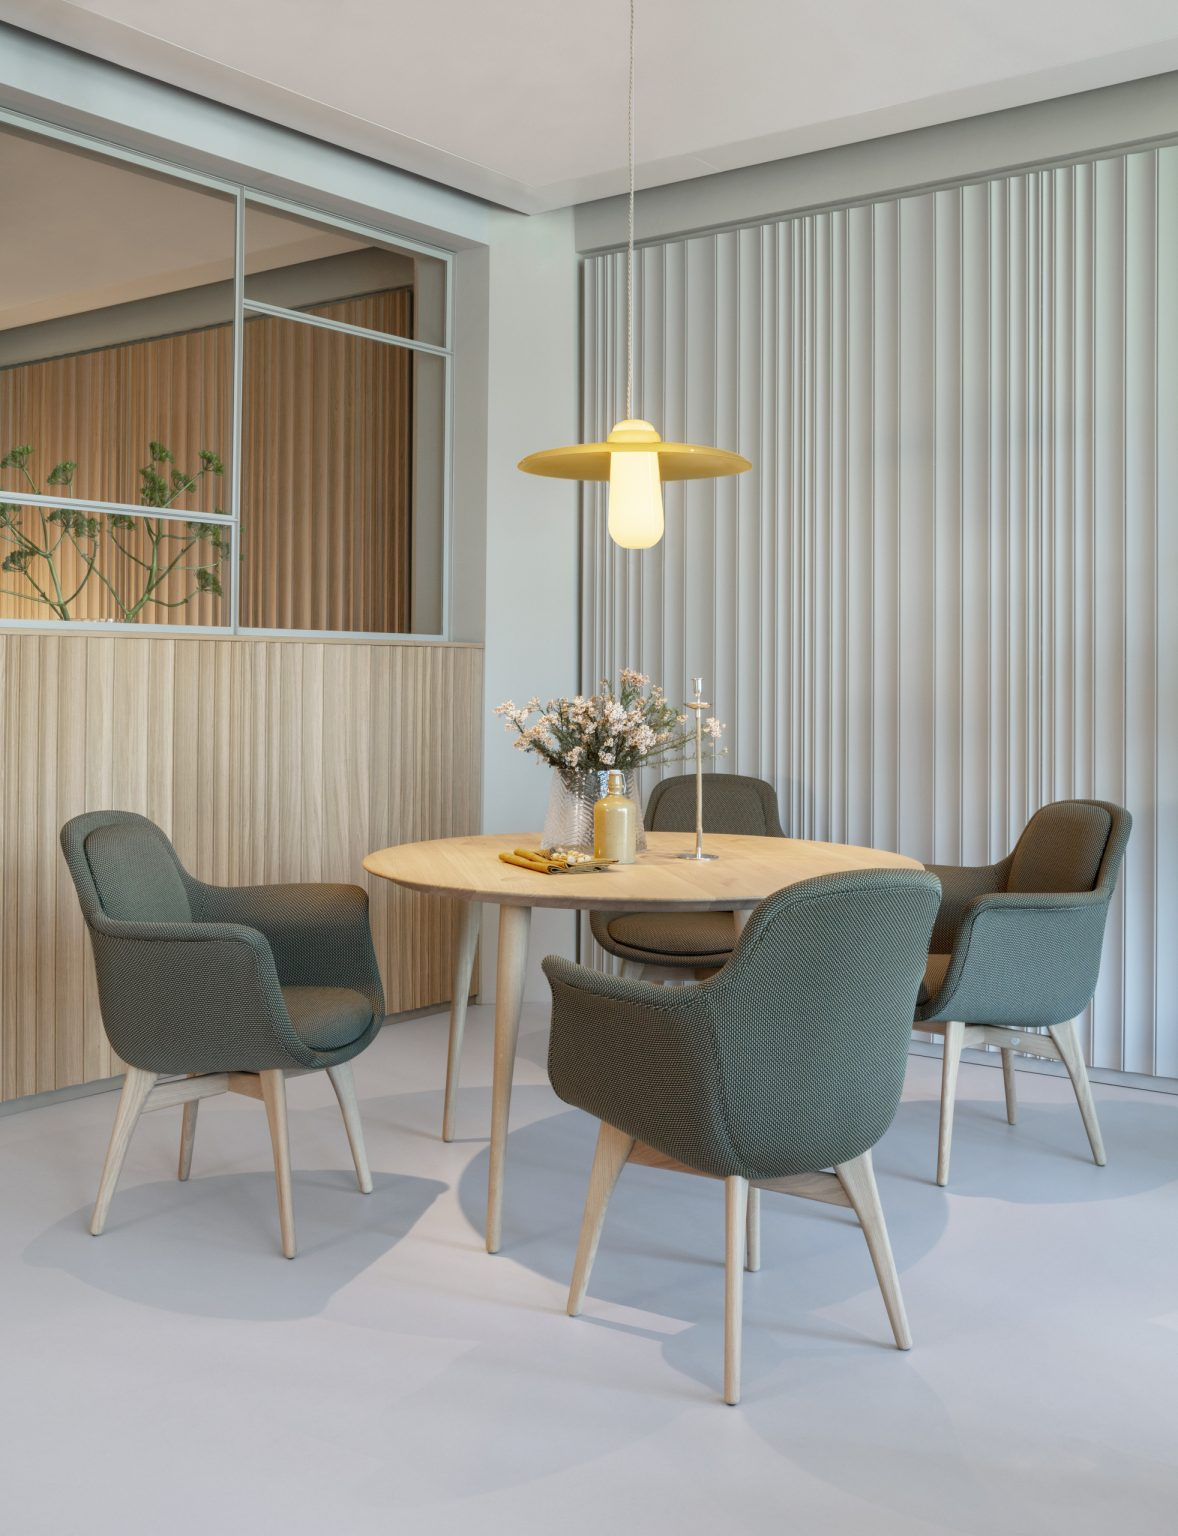 Biennale Interieur - Belgium's leading design and interior event - Revised-styling-rotterdam-showrrom-by-day-ph-peer-lindgreen-2.jpg